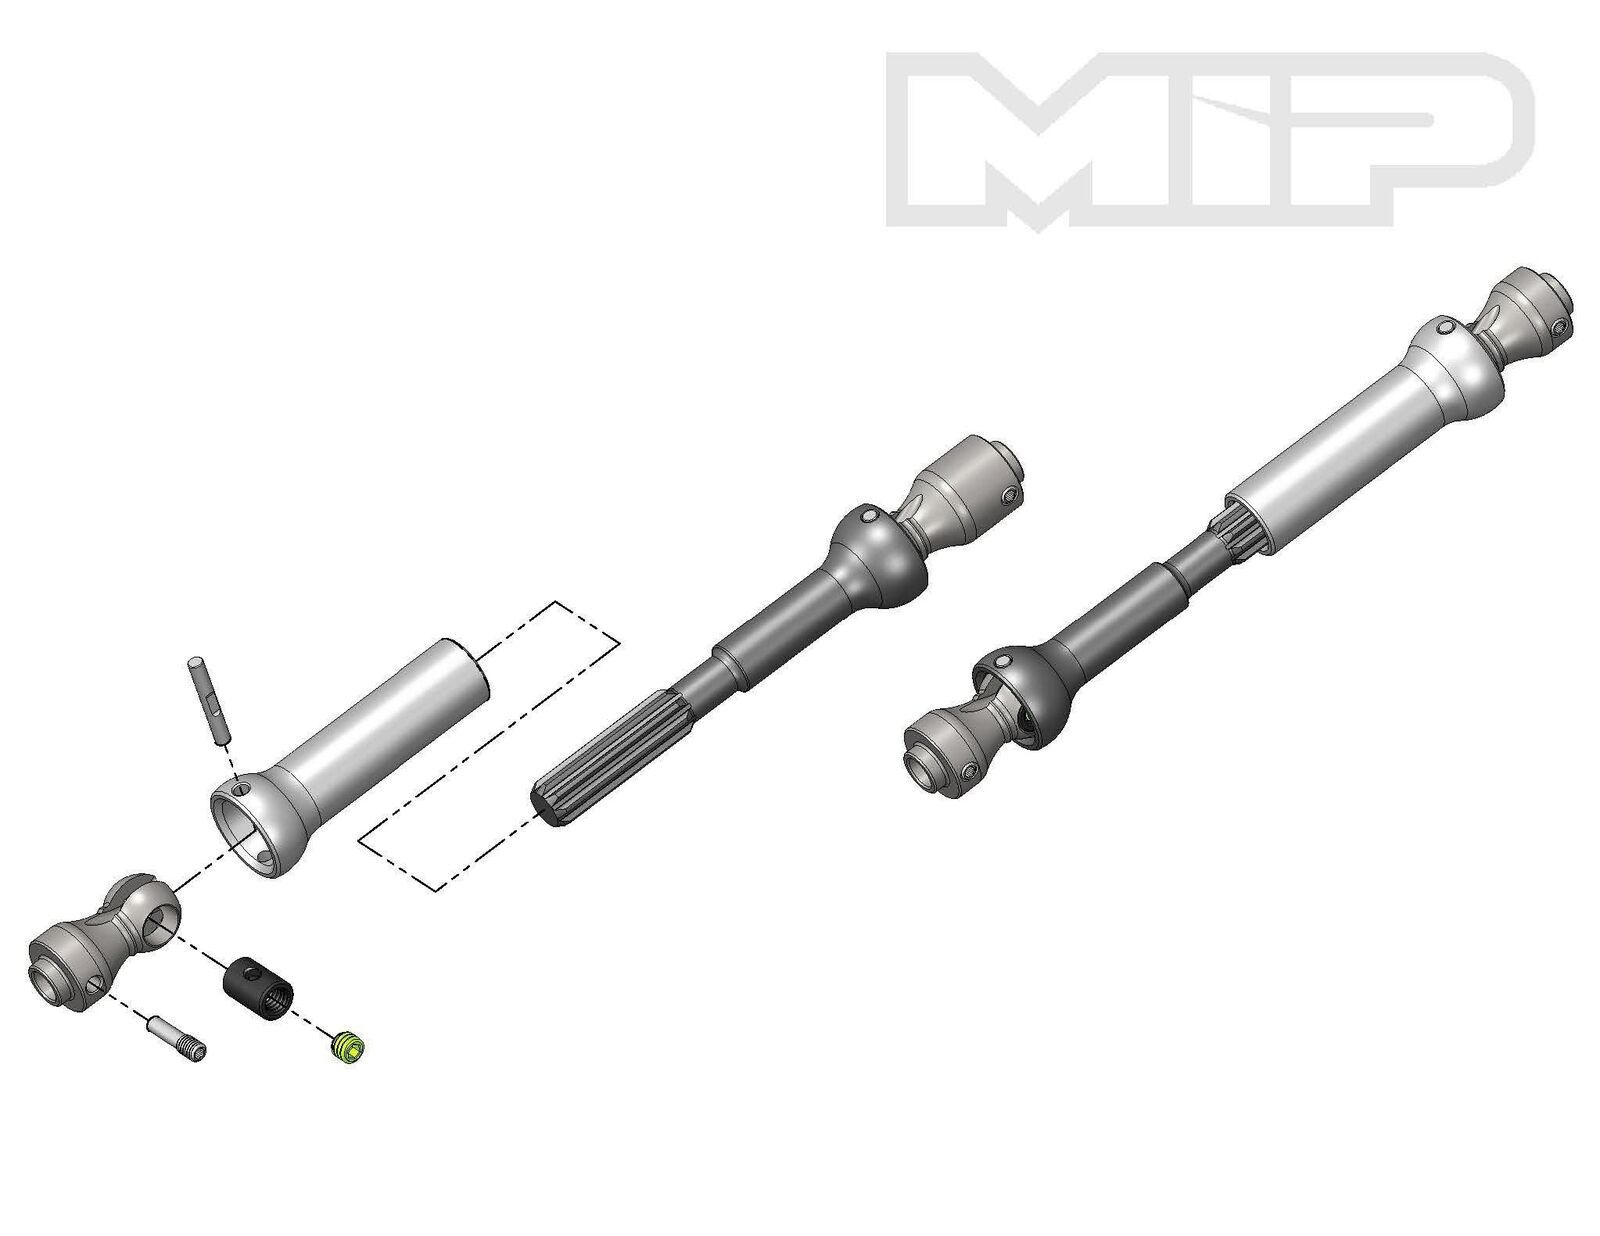 MIP Moore's Ideal Products MIP13360 Spline CVD Center Drive Kit Axial SCX10 Vehi